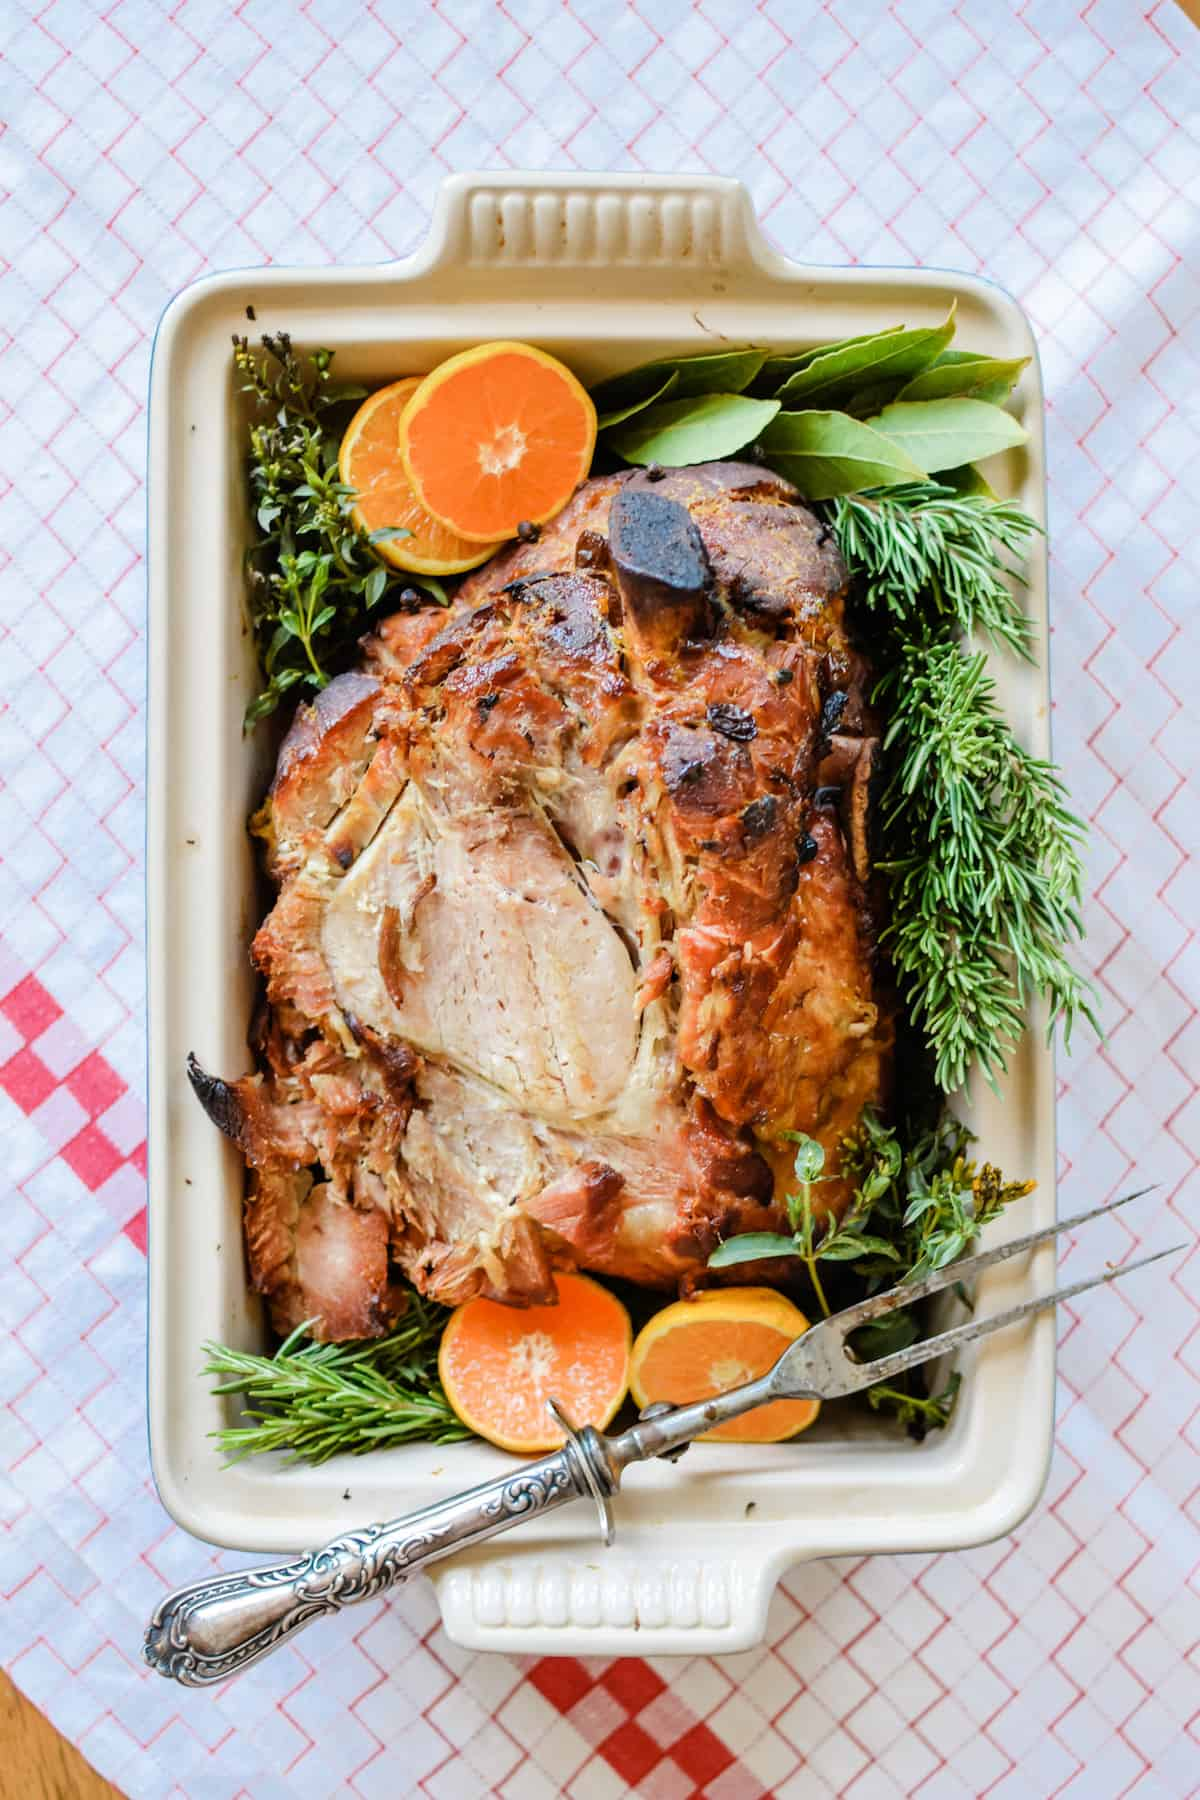 The first rule of any holiday meal is: There Will Be Leftovers! Whether it's Christmas or Easter or many holiday brunches in-between, a big, gorgeous roast ham sits centerstage. But what are we going to do with all the leftovers? Here are our 5 BEST Leftover Ham Recipes that will have it gone in no time! We've got recipes for breakfast, lunch, and dinner with everything from a cozy soup to an indulgent breakfast casserole. #leftoverham #leftoverhamrecipes #ham #hamrecipes